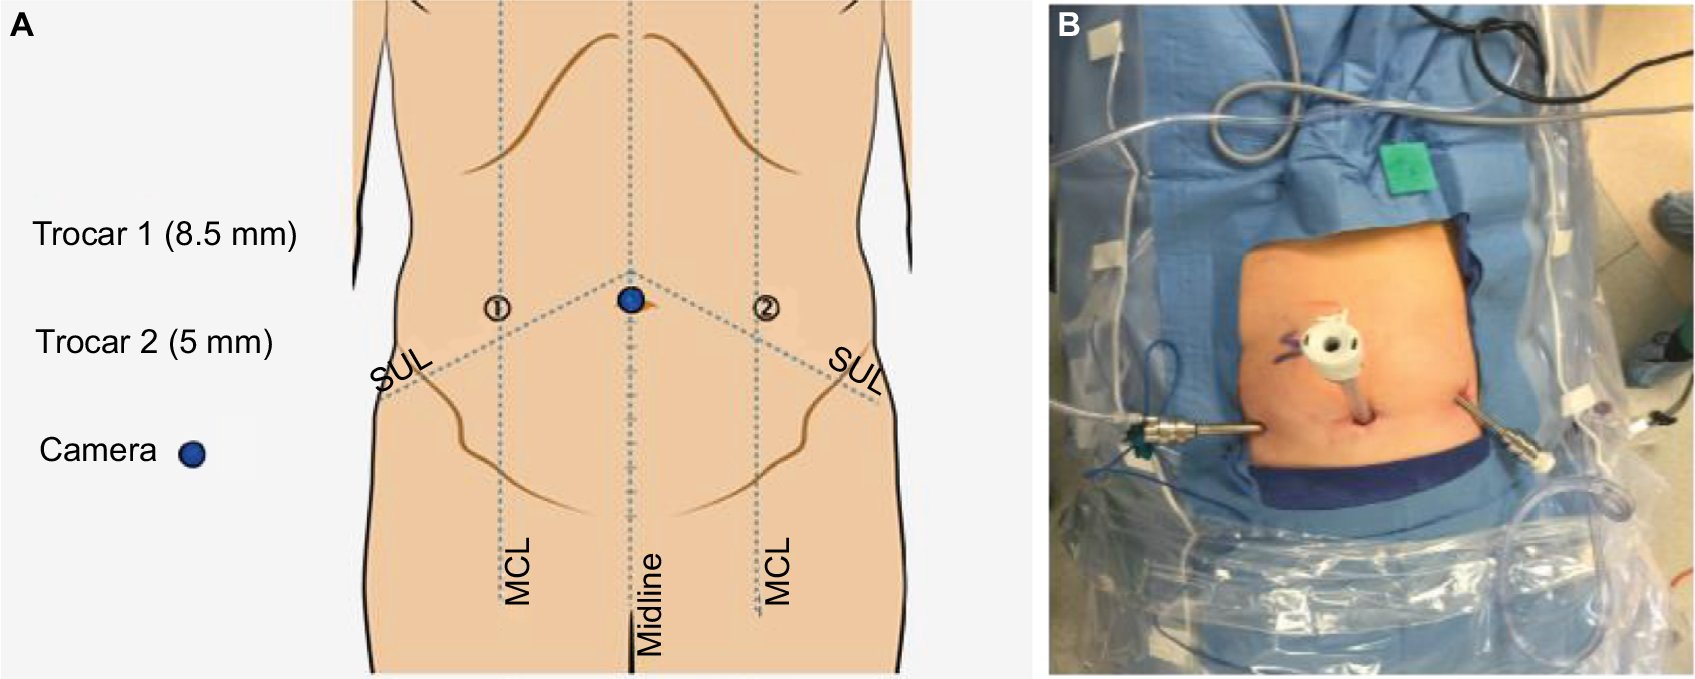 Full text] Current perspectives in robotic hernia repair | RSRR